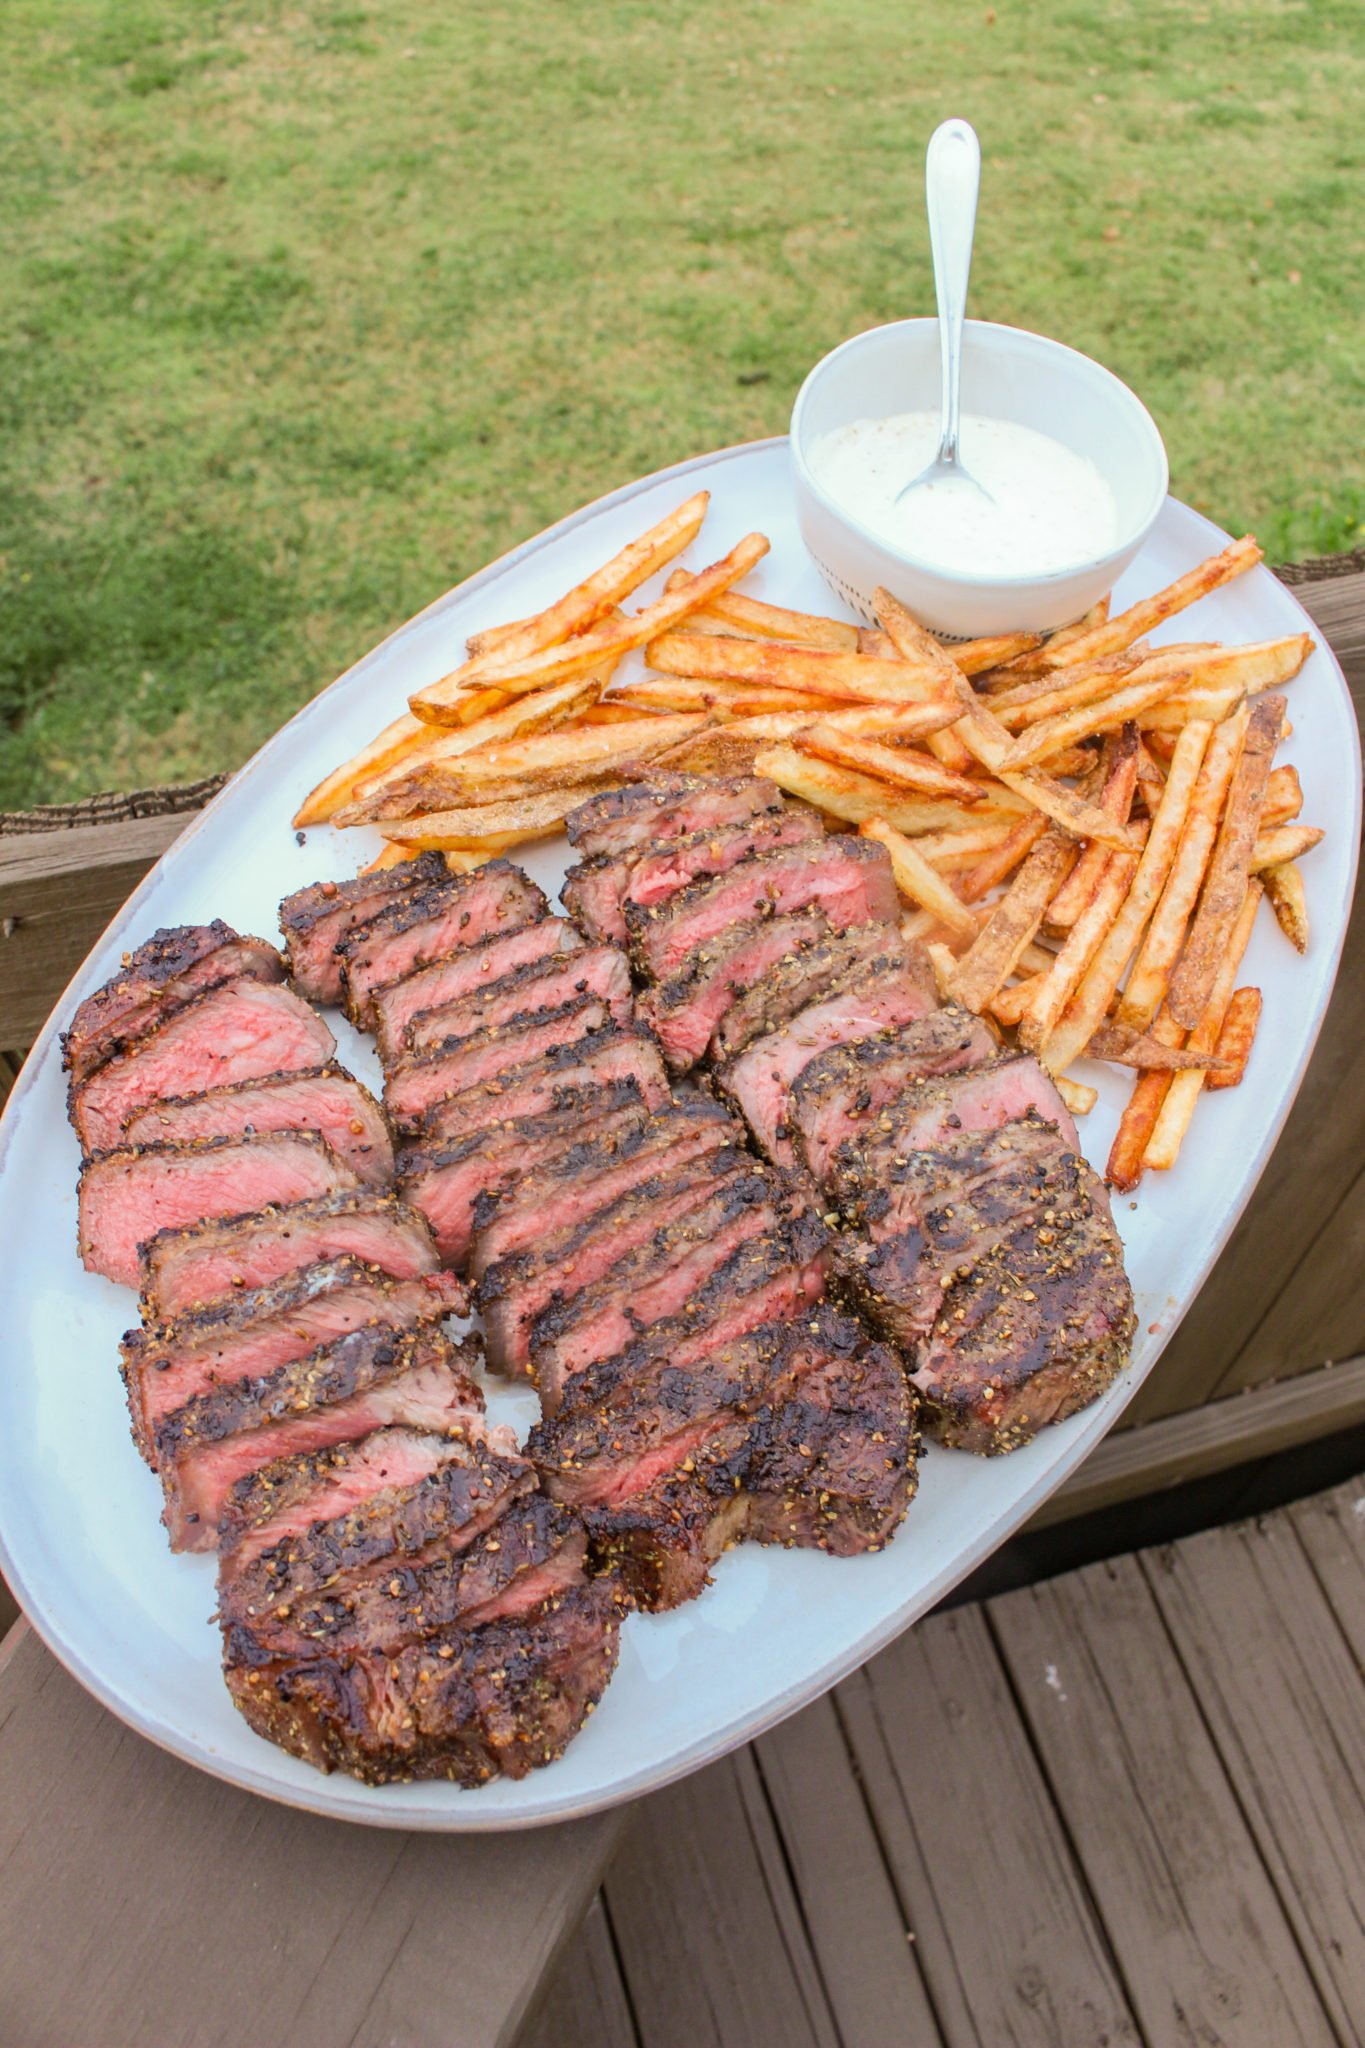 Peppercorn Herb Steak and Fries